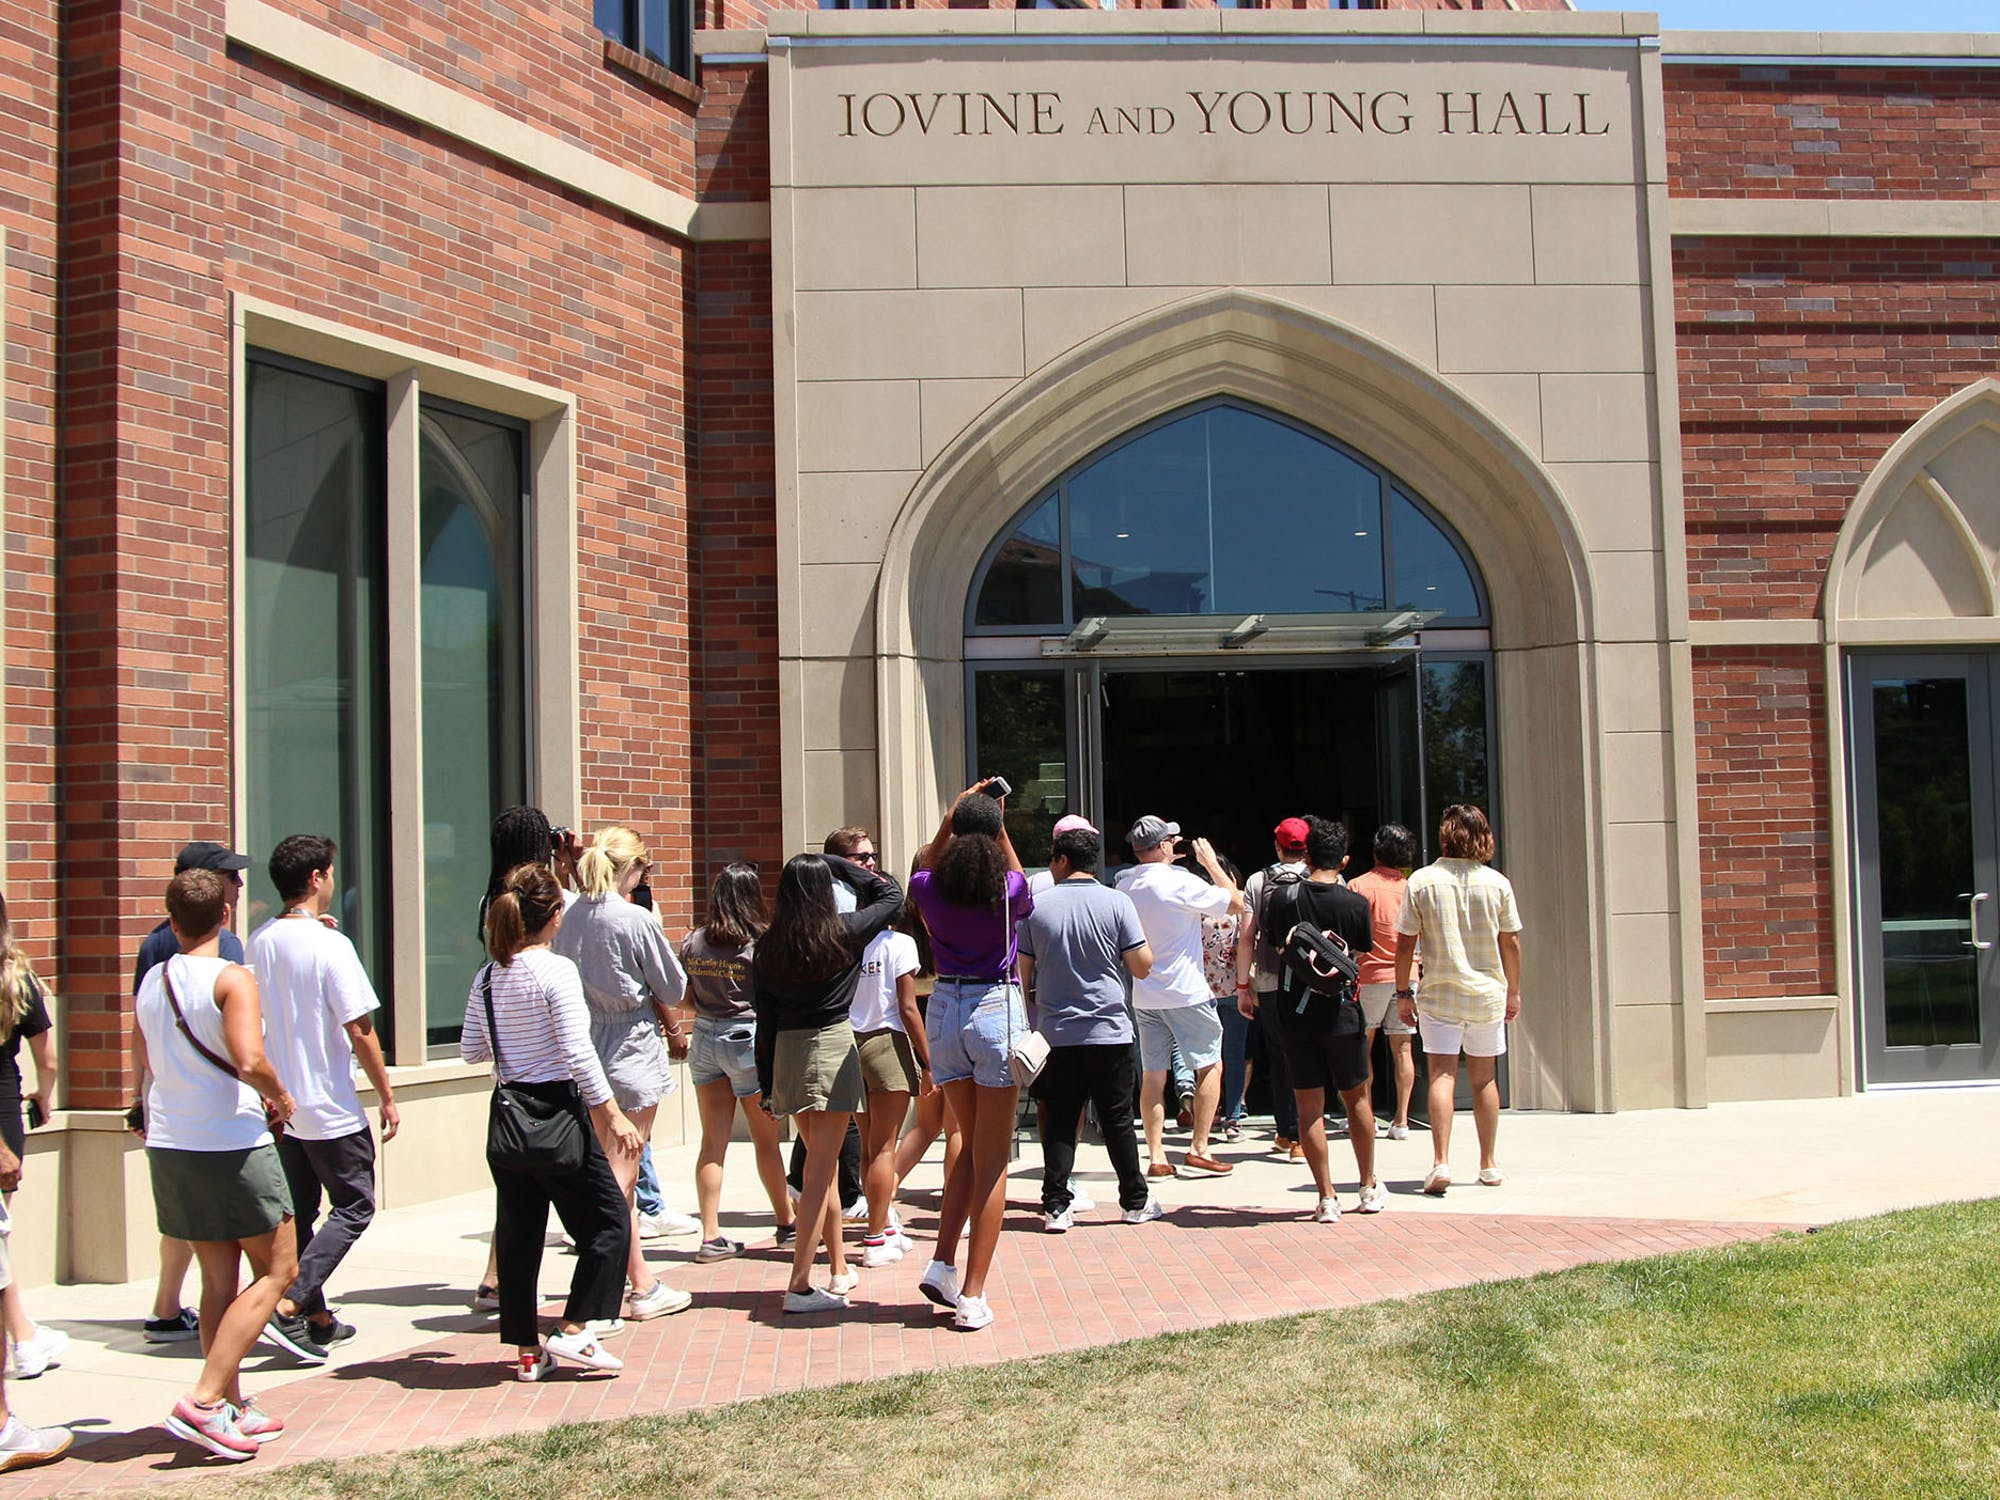 A group of students walking into Iovine and Young Hall